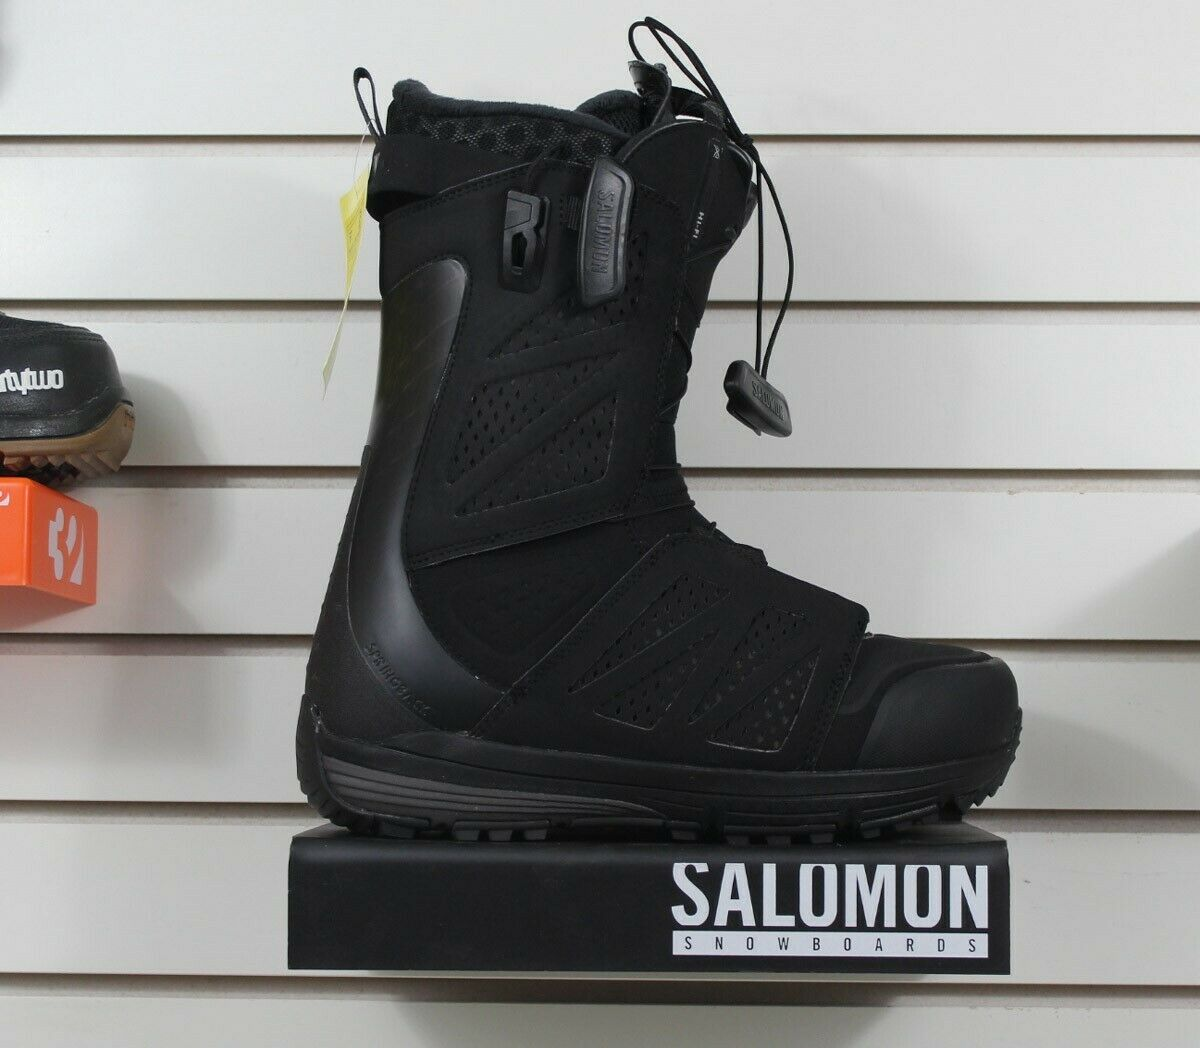 New 2018 Salomon Hi-Fi Snowboard Boots Mens Size 9.5 Black